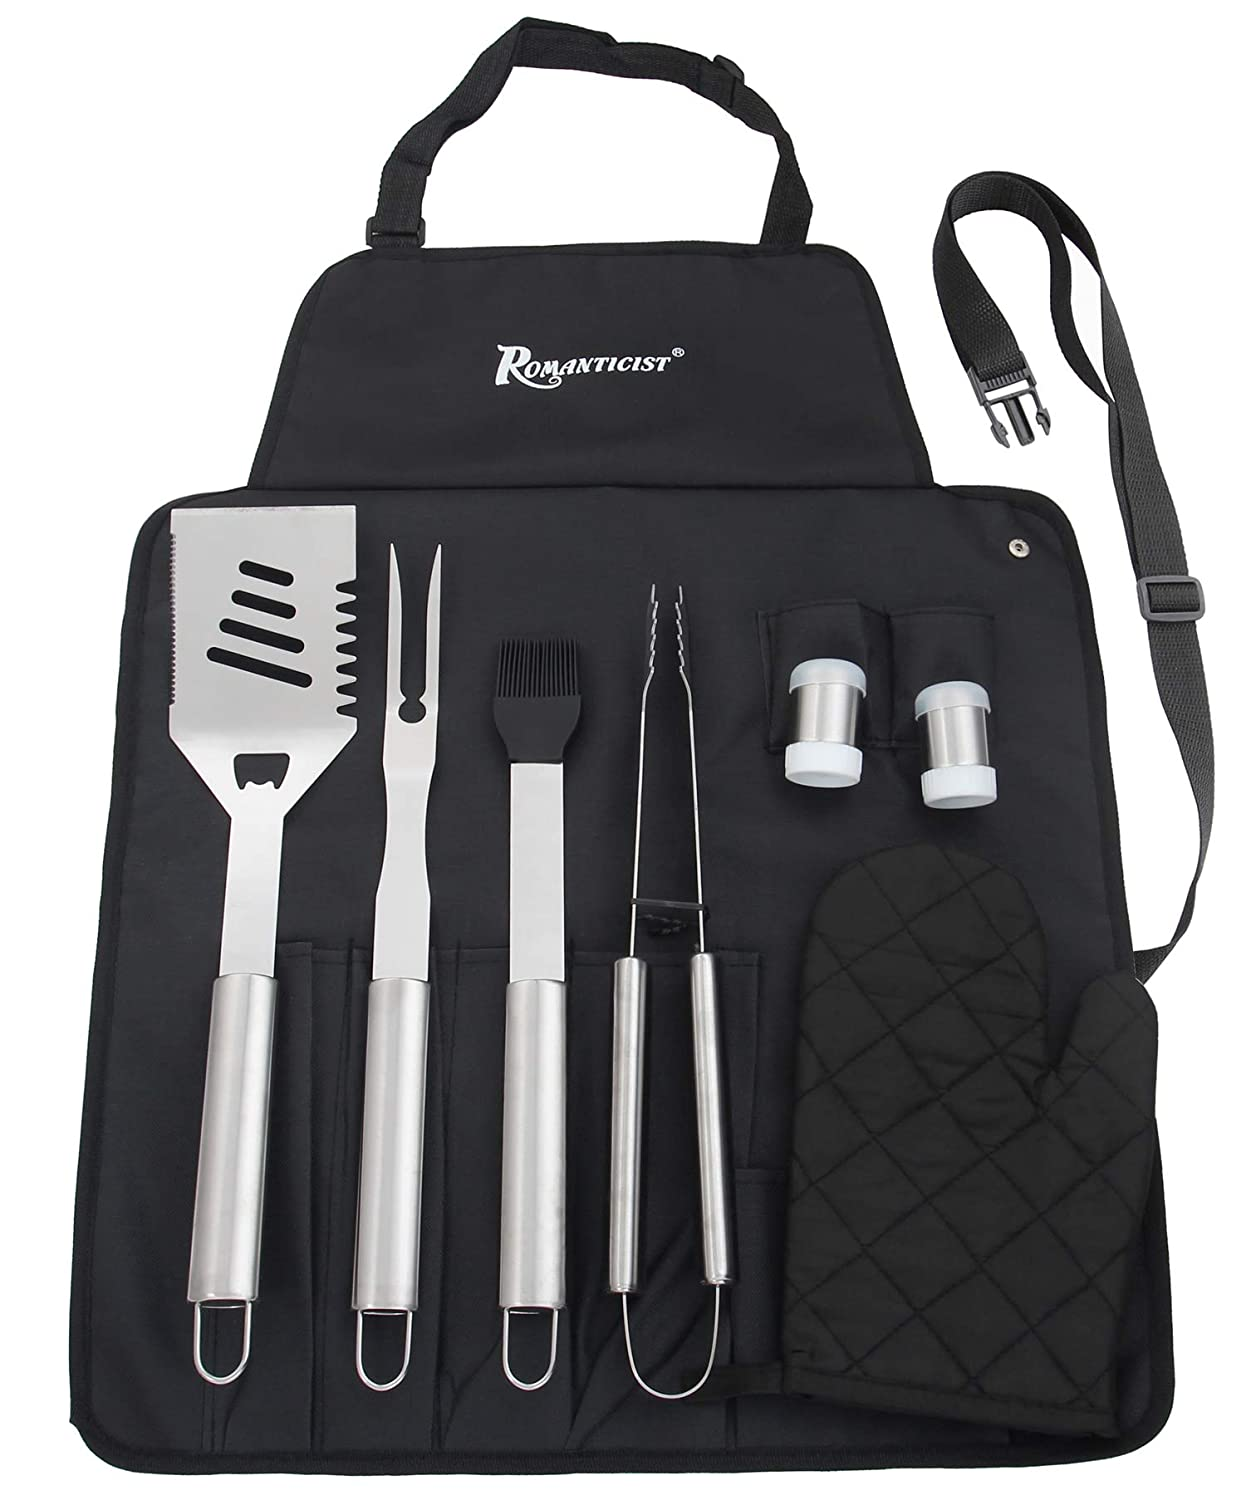 20 pcs Stainless Steel BBQ Grill Tool Set with Non-Slip Handle in Deluxe Aluminium Storage Carrying Case - Professional Barbecue Accessory with All-purpose Knife for Outdoor Activity - Gift Kit - ROMANTICIST XINGTAI XINGTAI-B9-A109